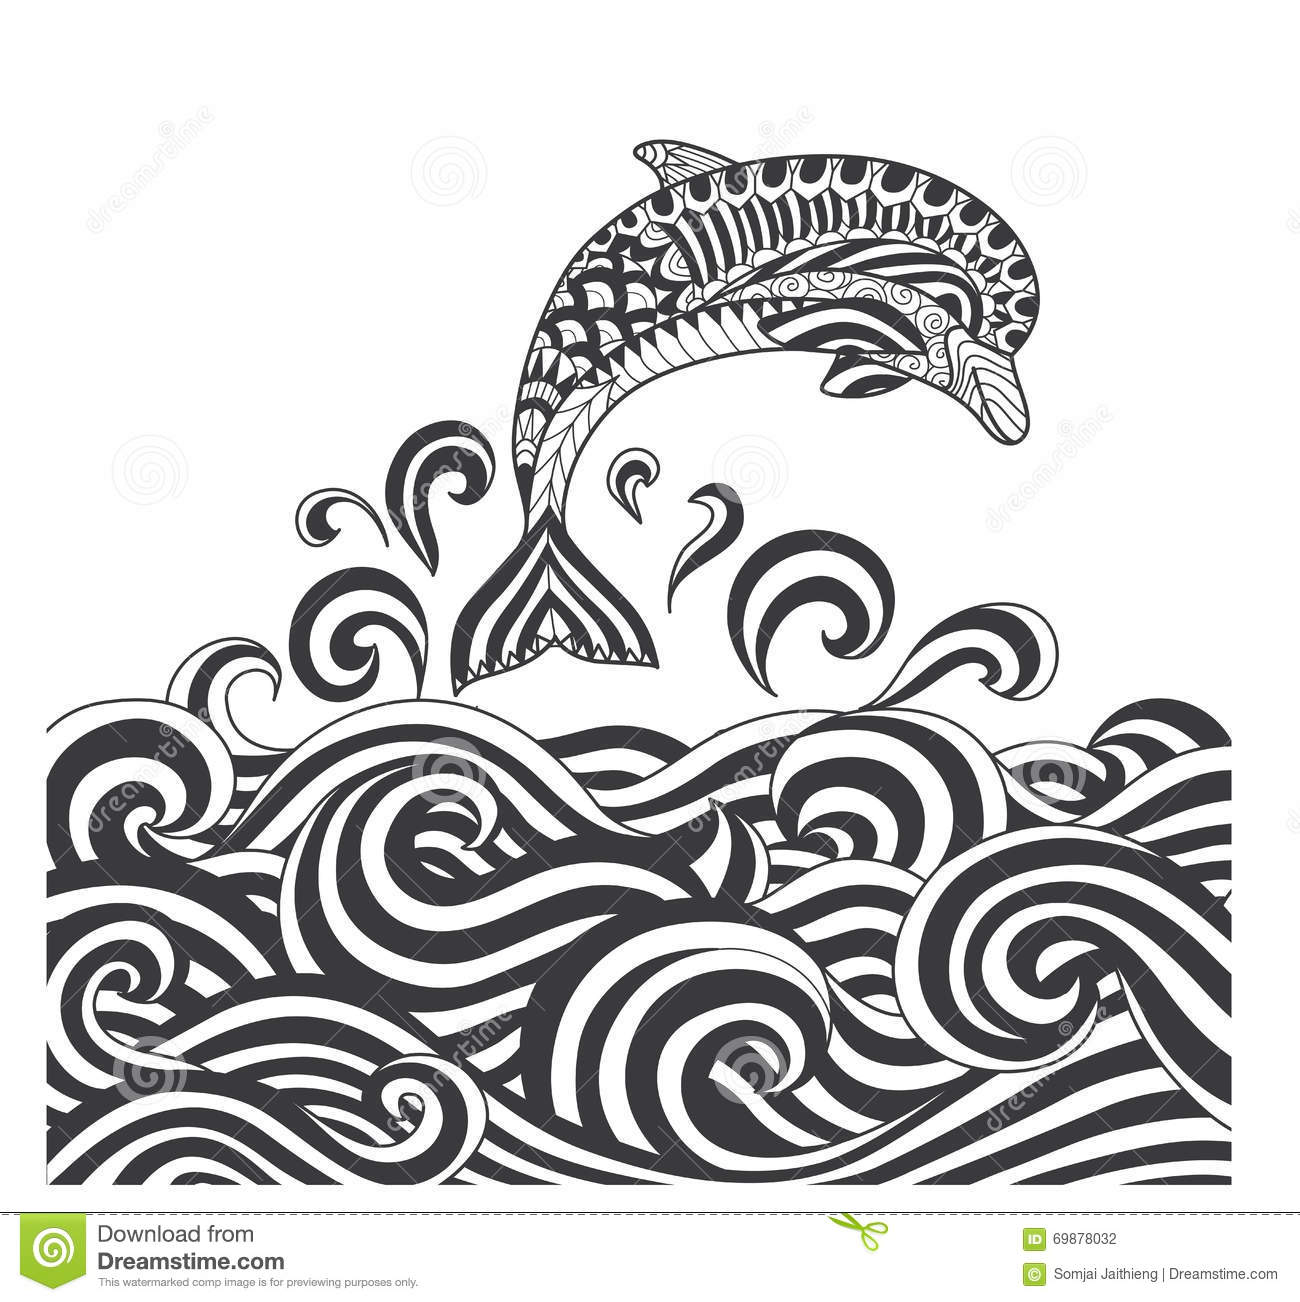 Royalty Free Vector Download Zentangle Dolphins In Scrolling Sea Wave For Adult Coloring Page Book Cover